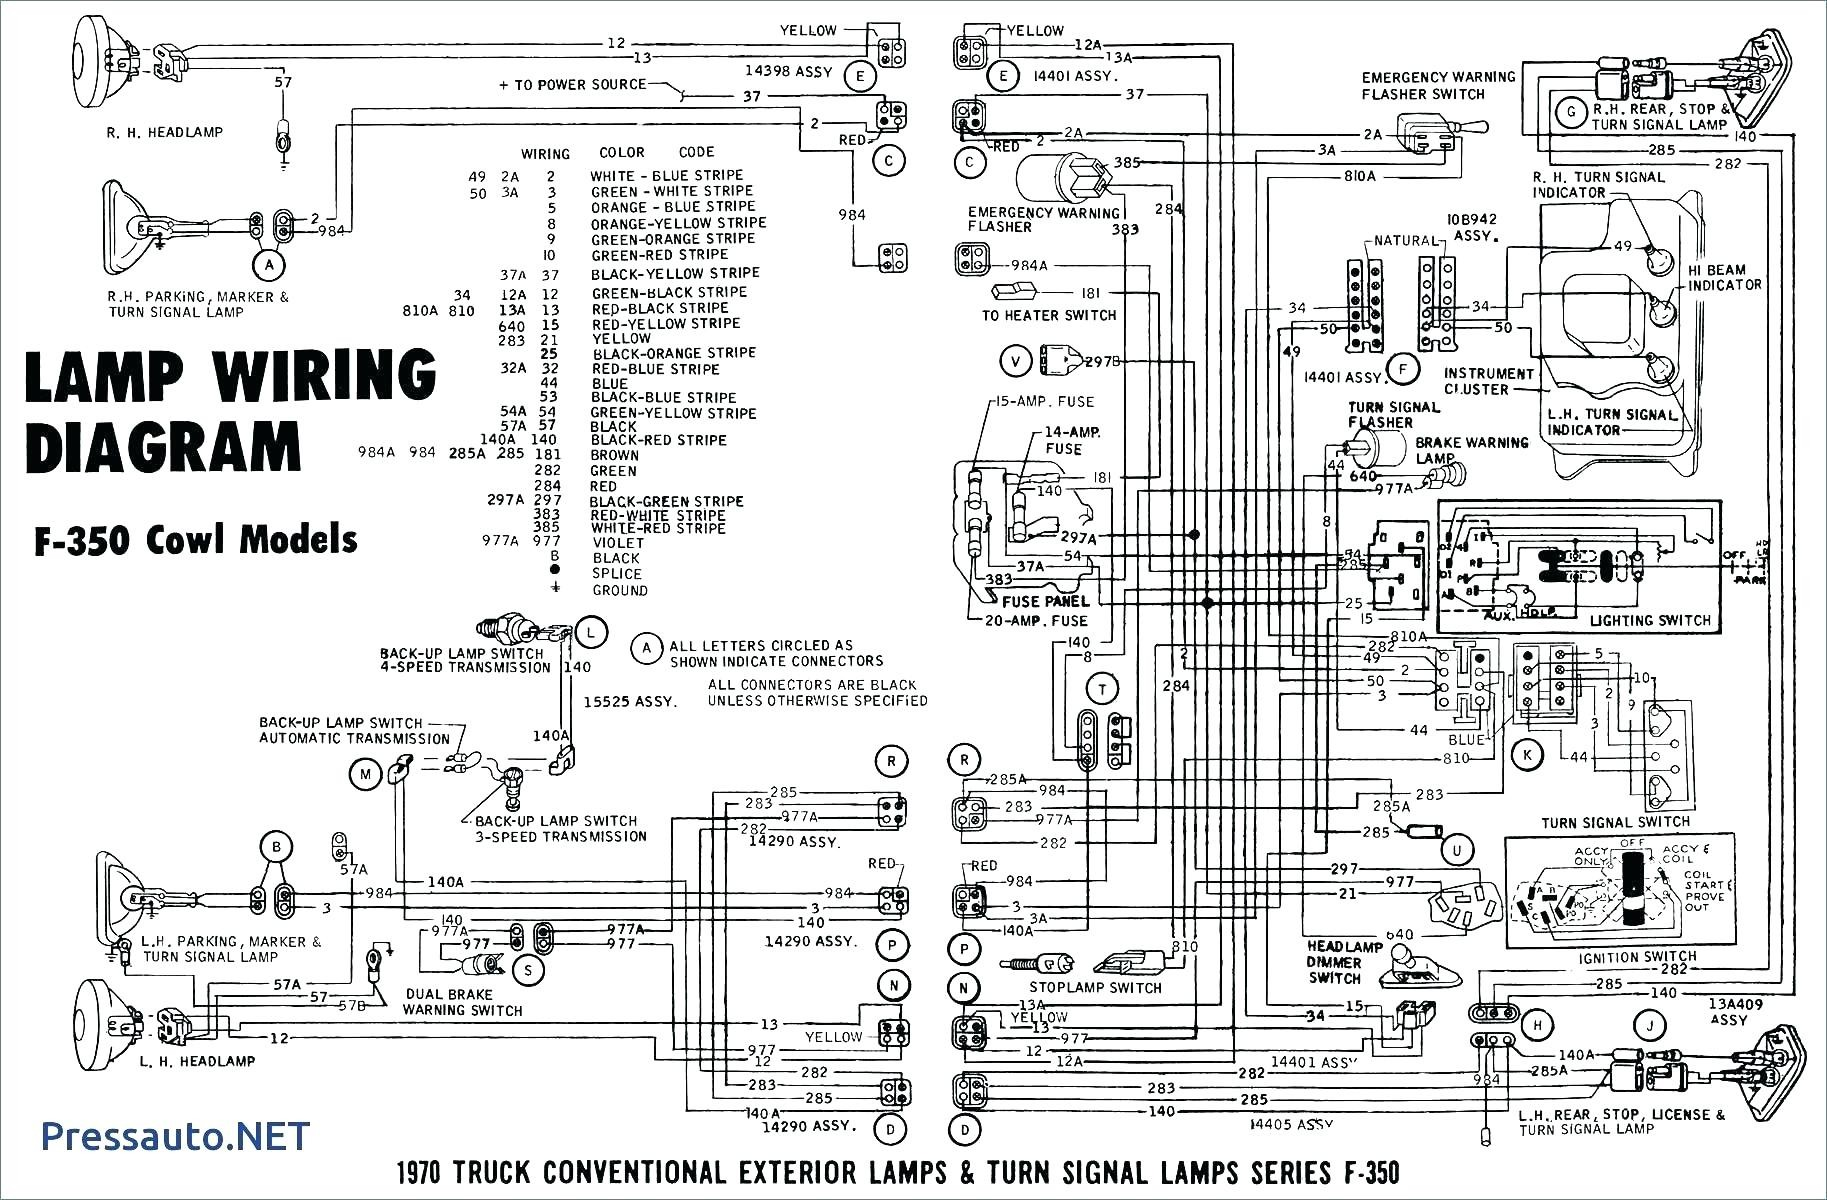 Mobile Home Wiring Diagram Diagramscoleman Wiring